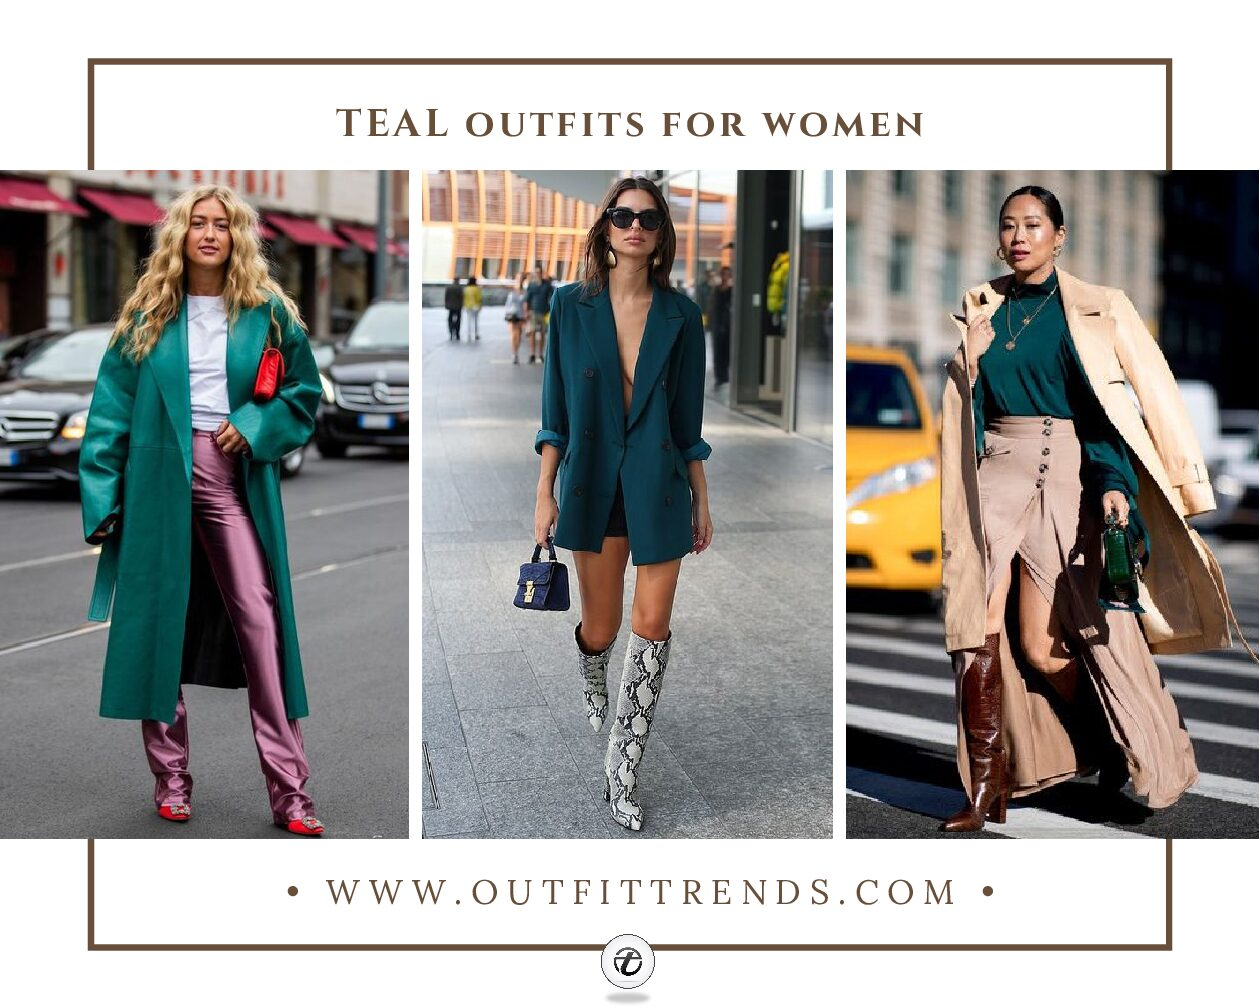 20 Best Teal Outfits for Women & Tips on What Goes with Teal